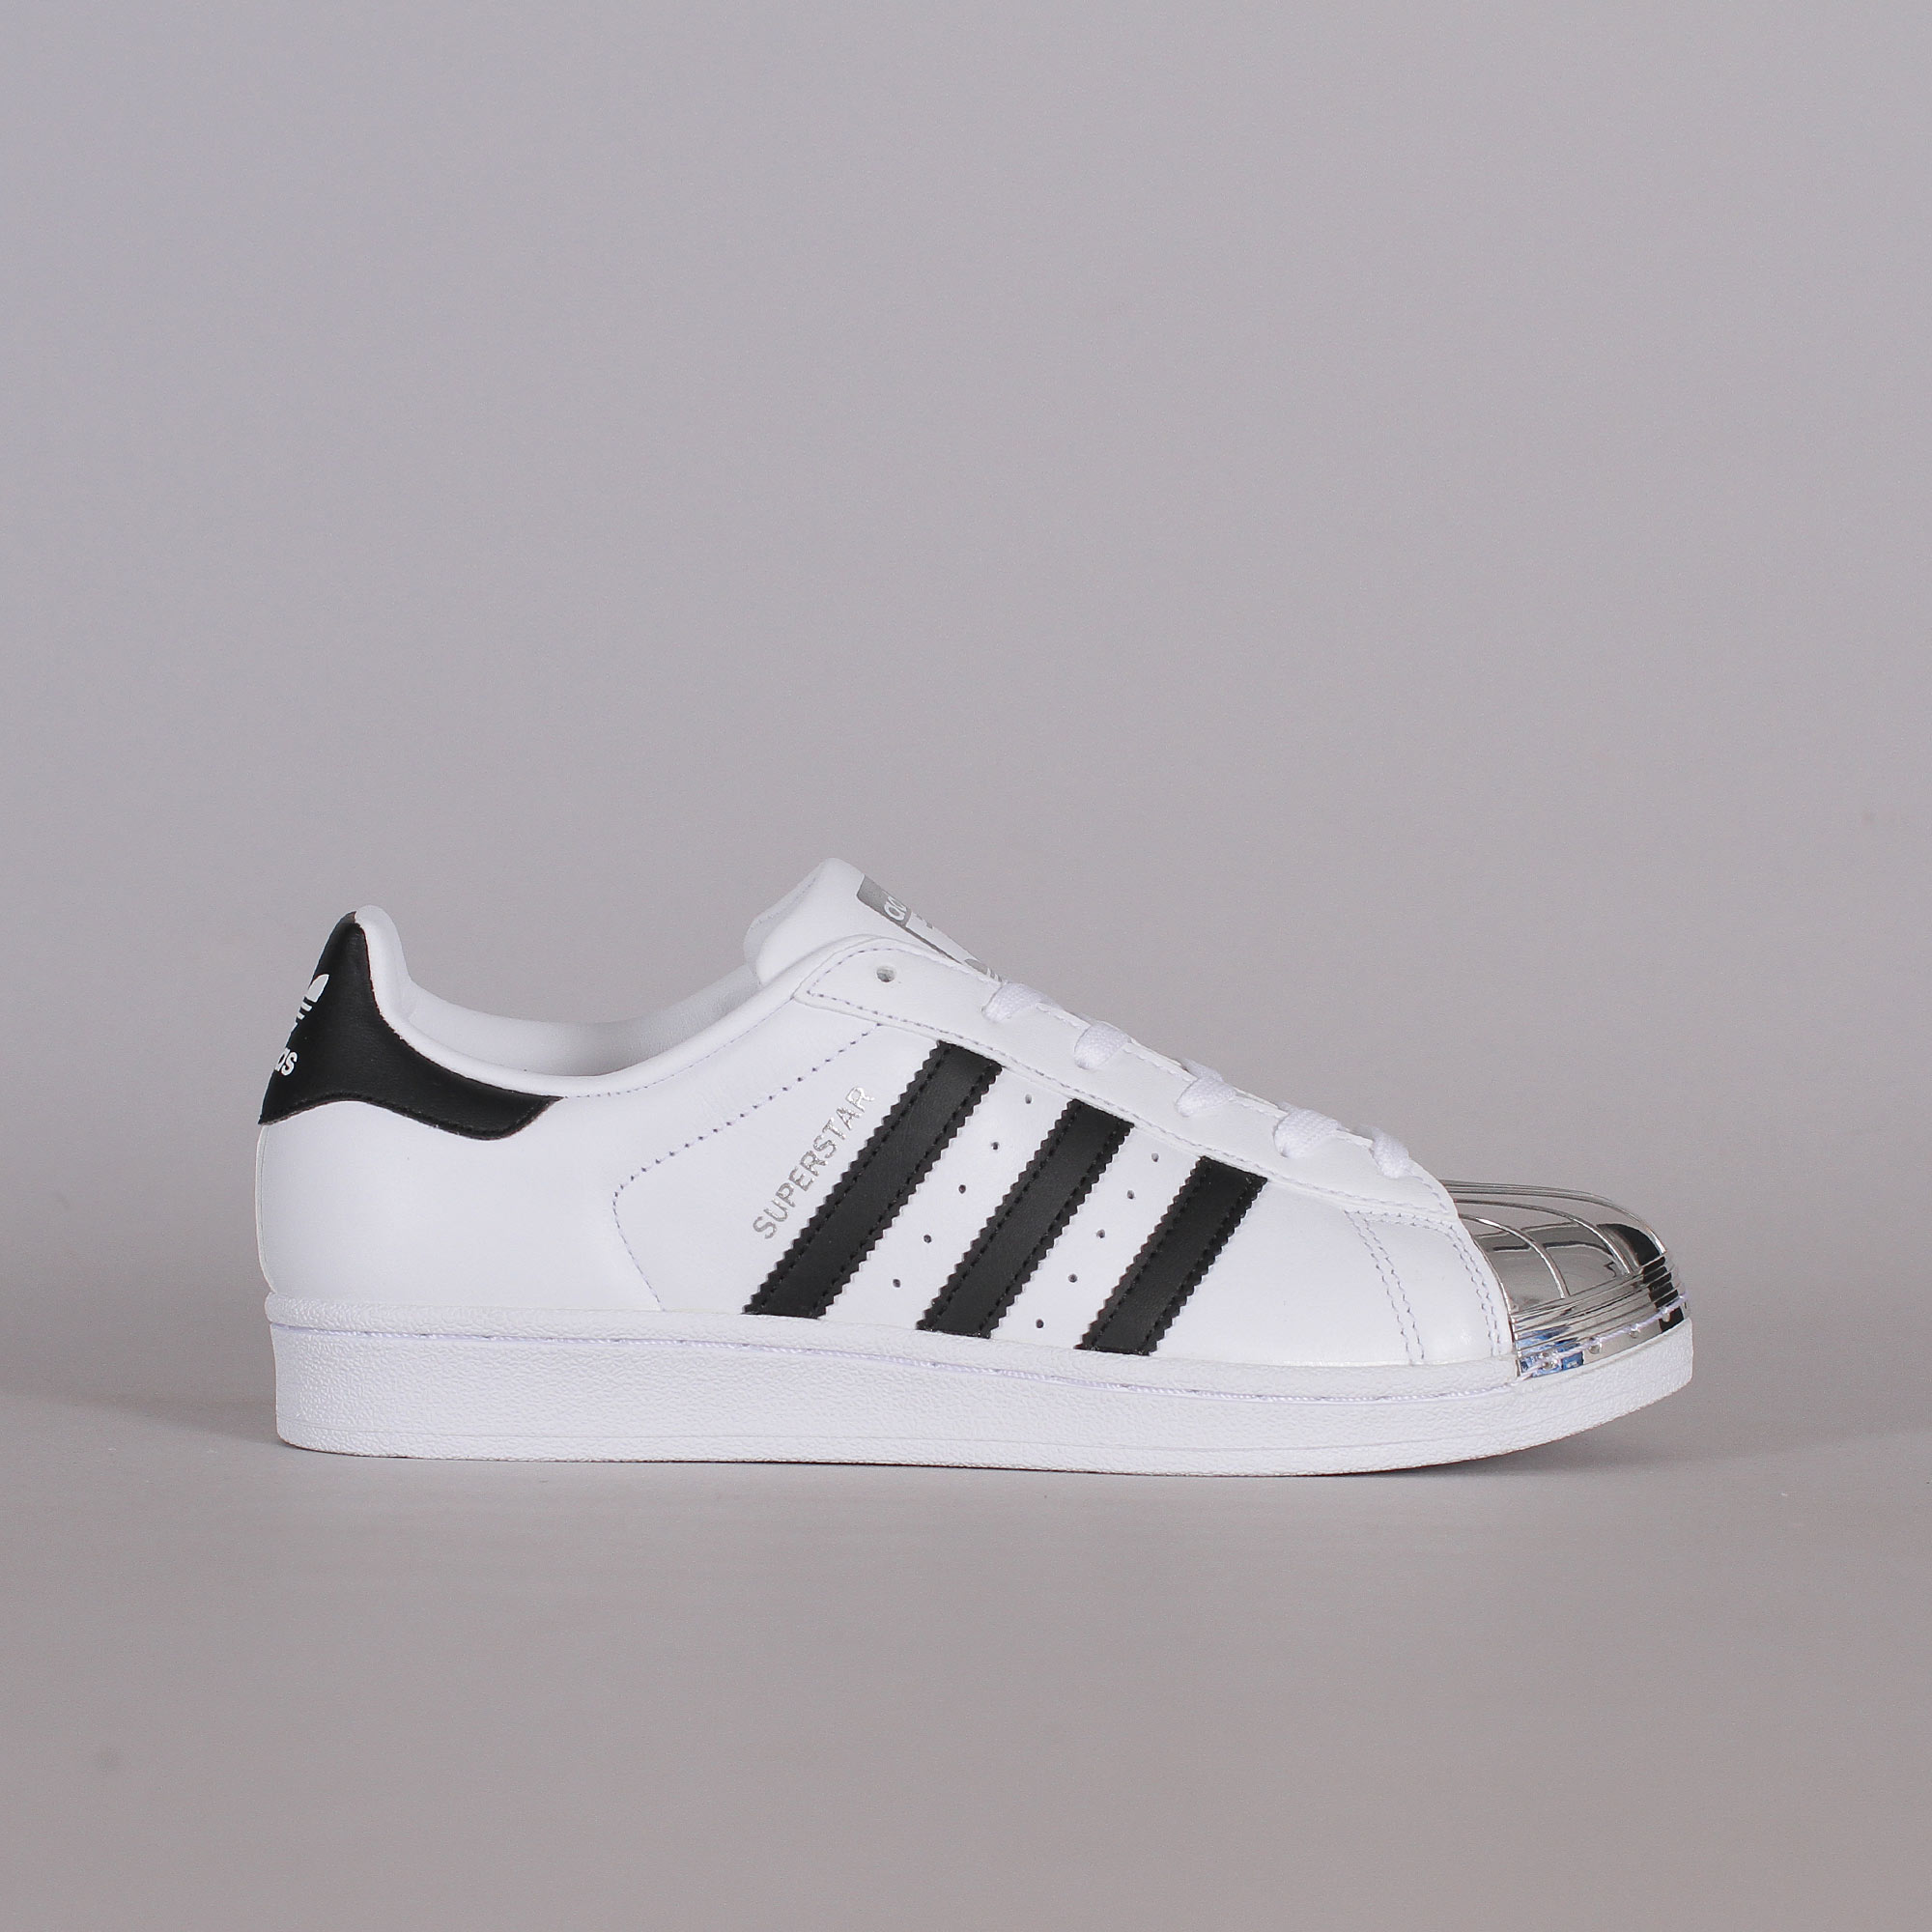 Dam adidas Originals SUPERSTAR 80S METAL TOE Sneakers